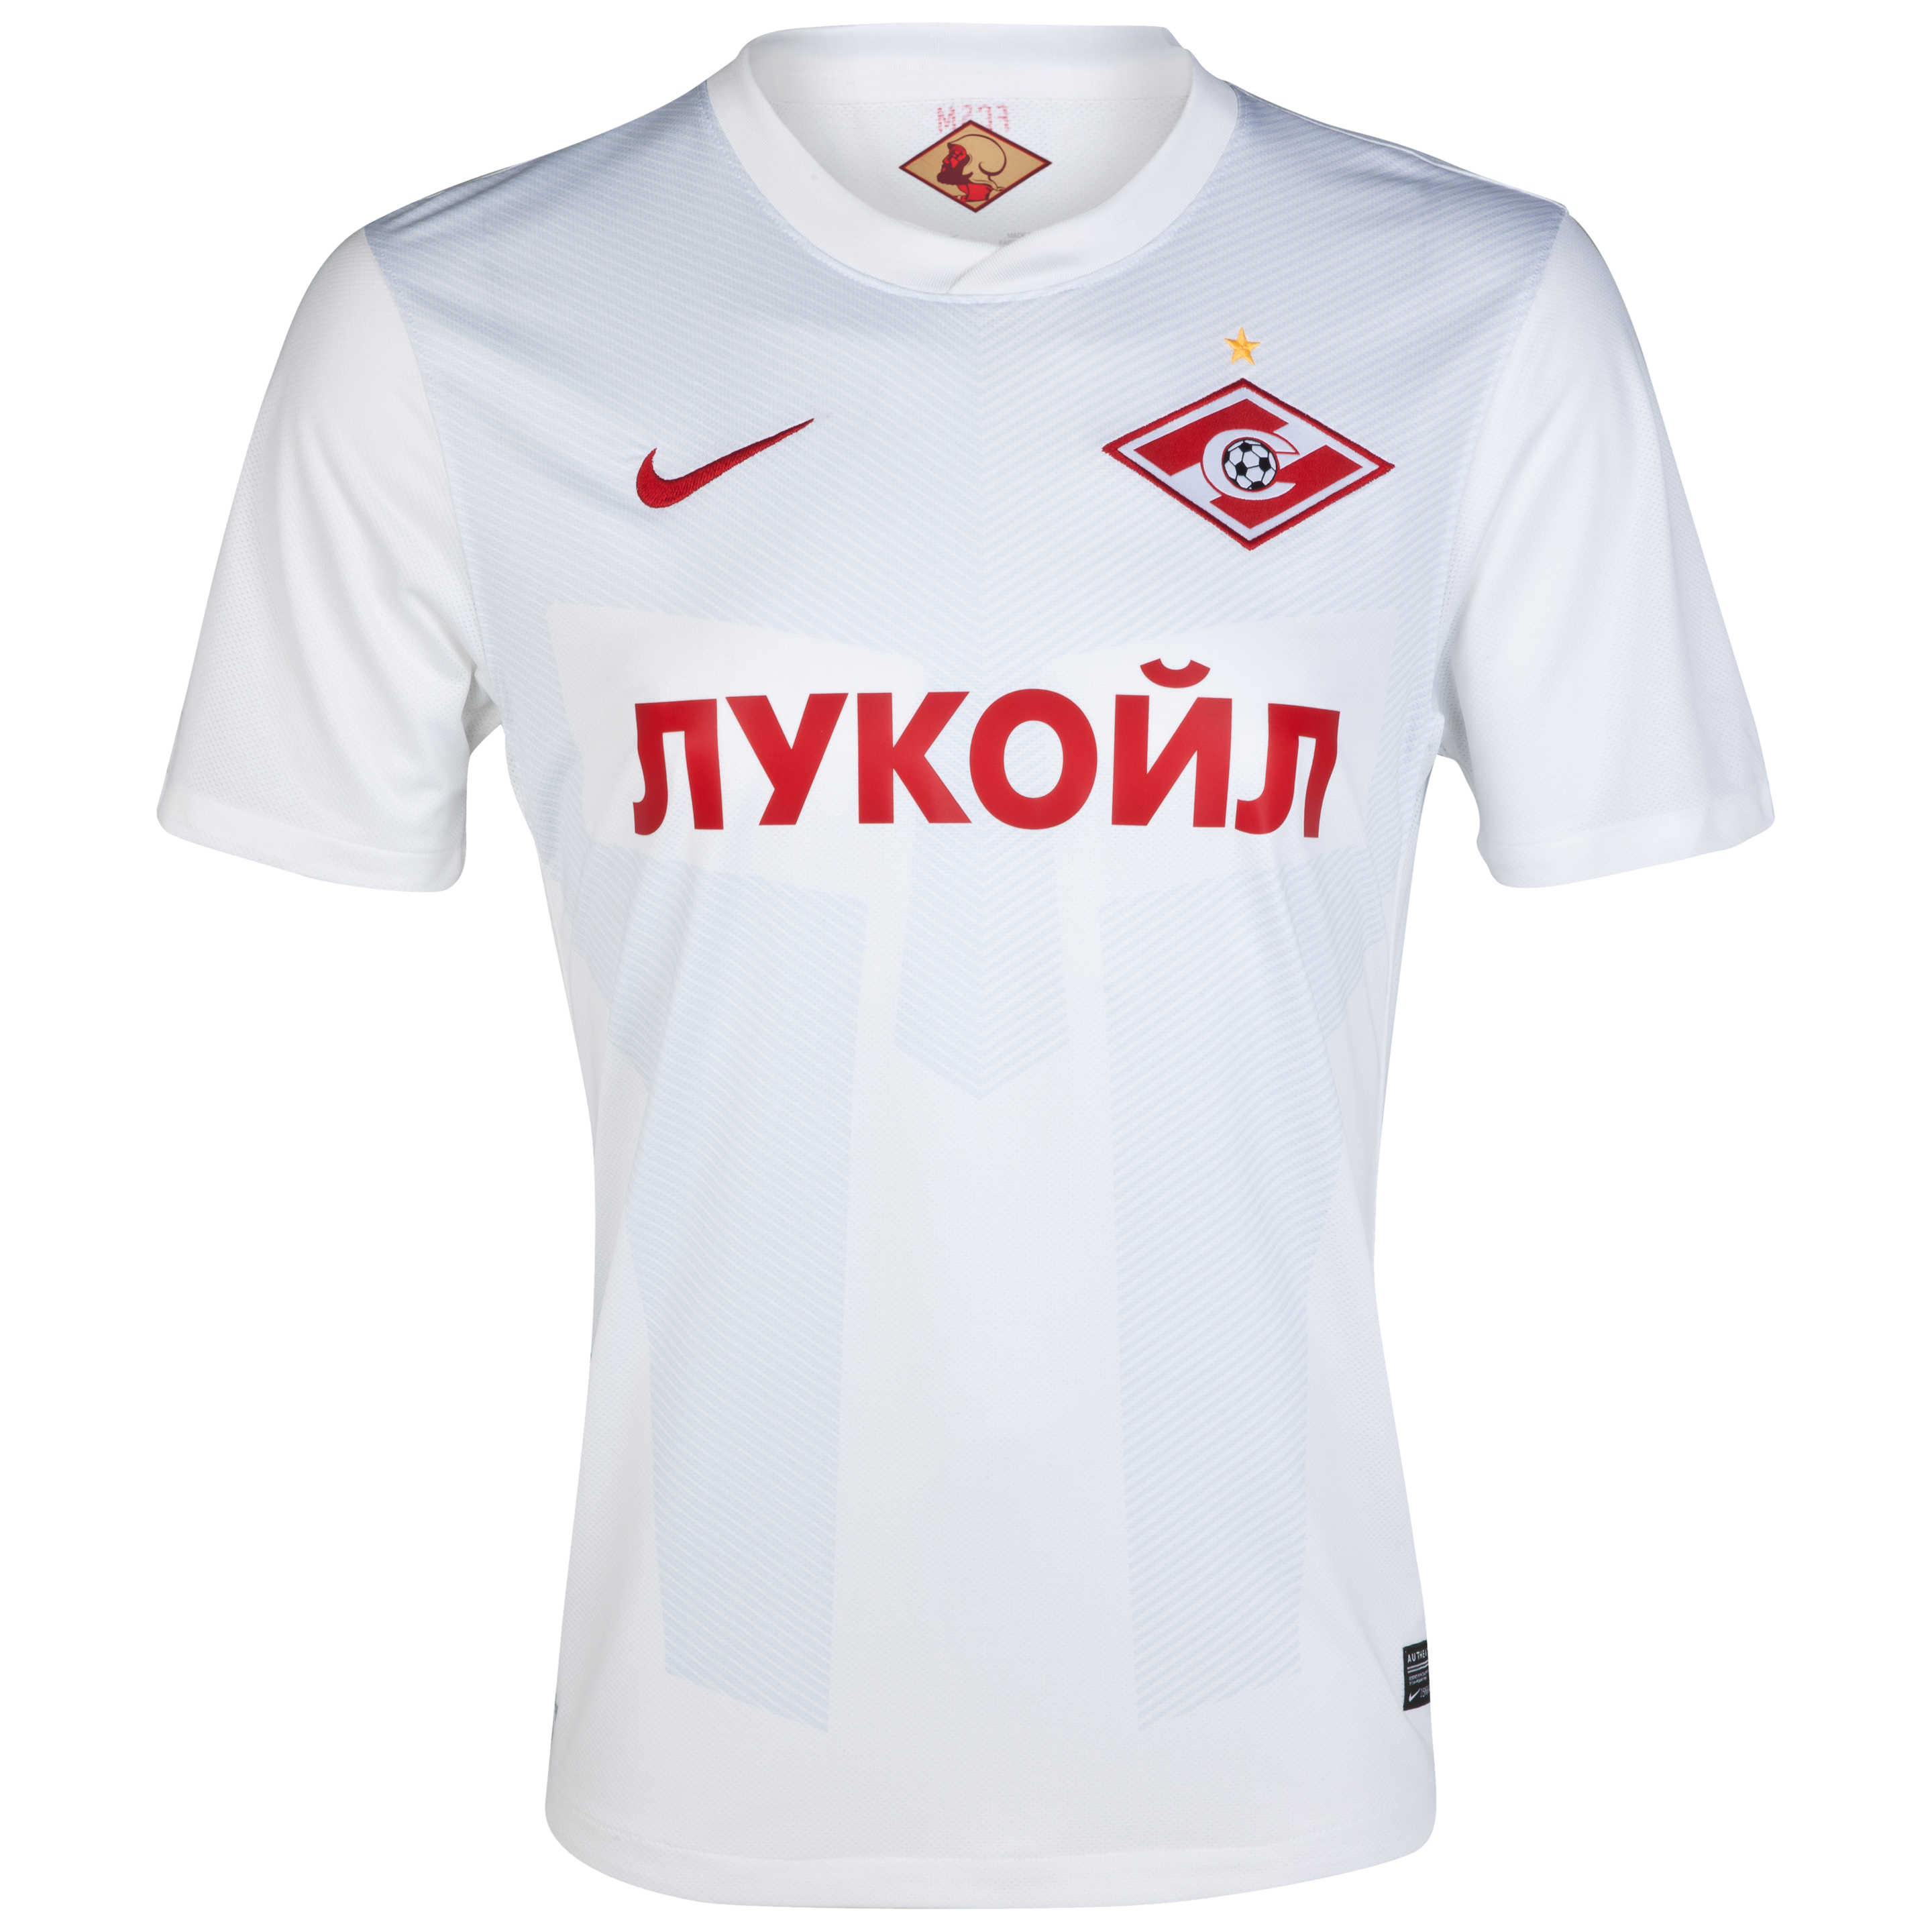 Spartak Moscow 2012/13 Away Shirt - Football White/Football Grey/Comet Red